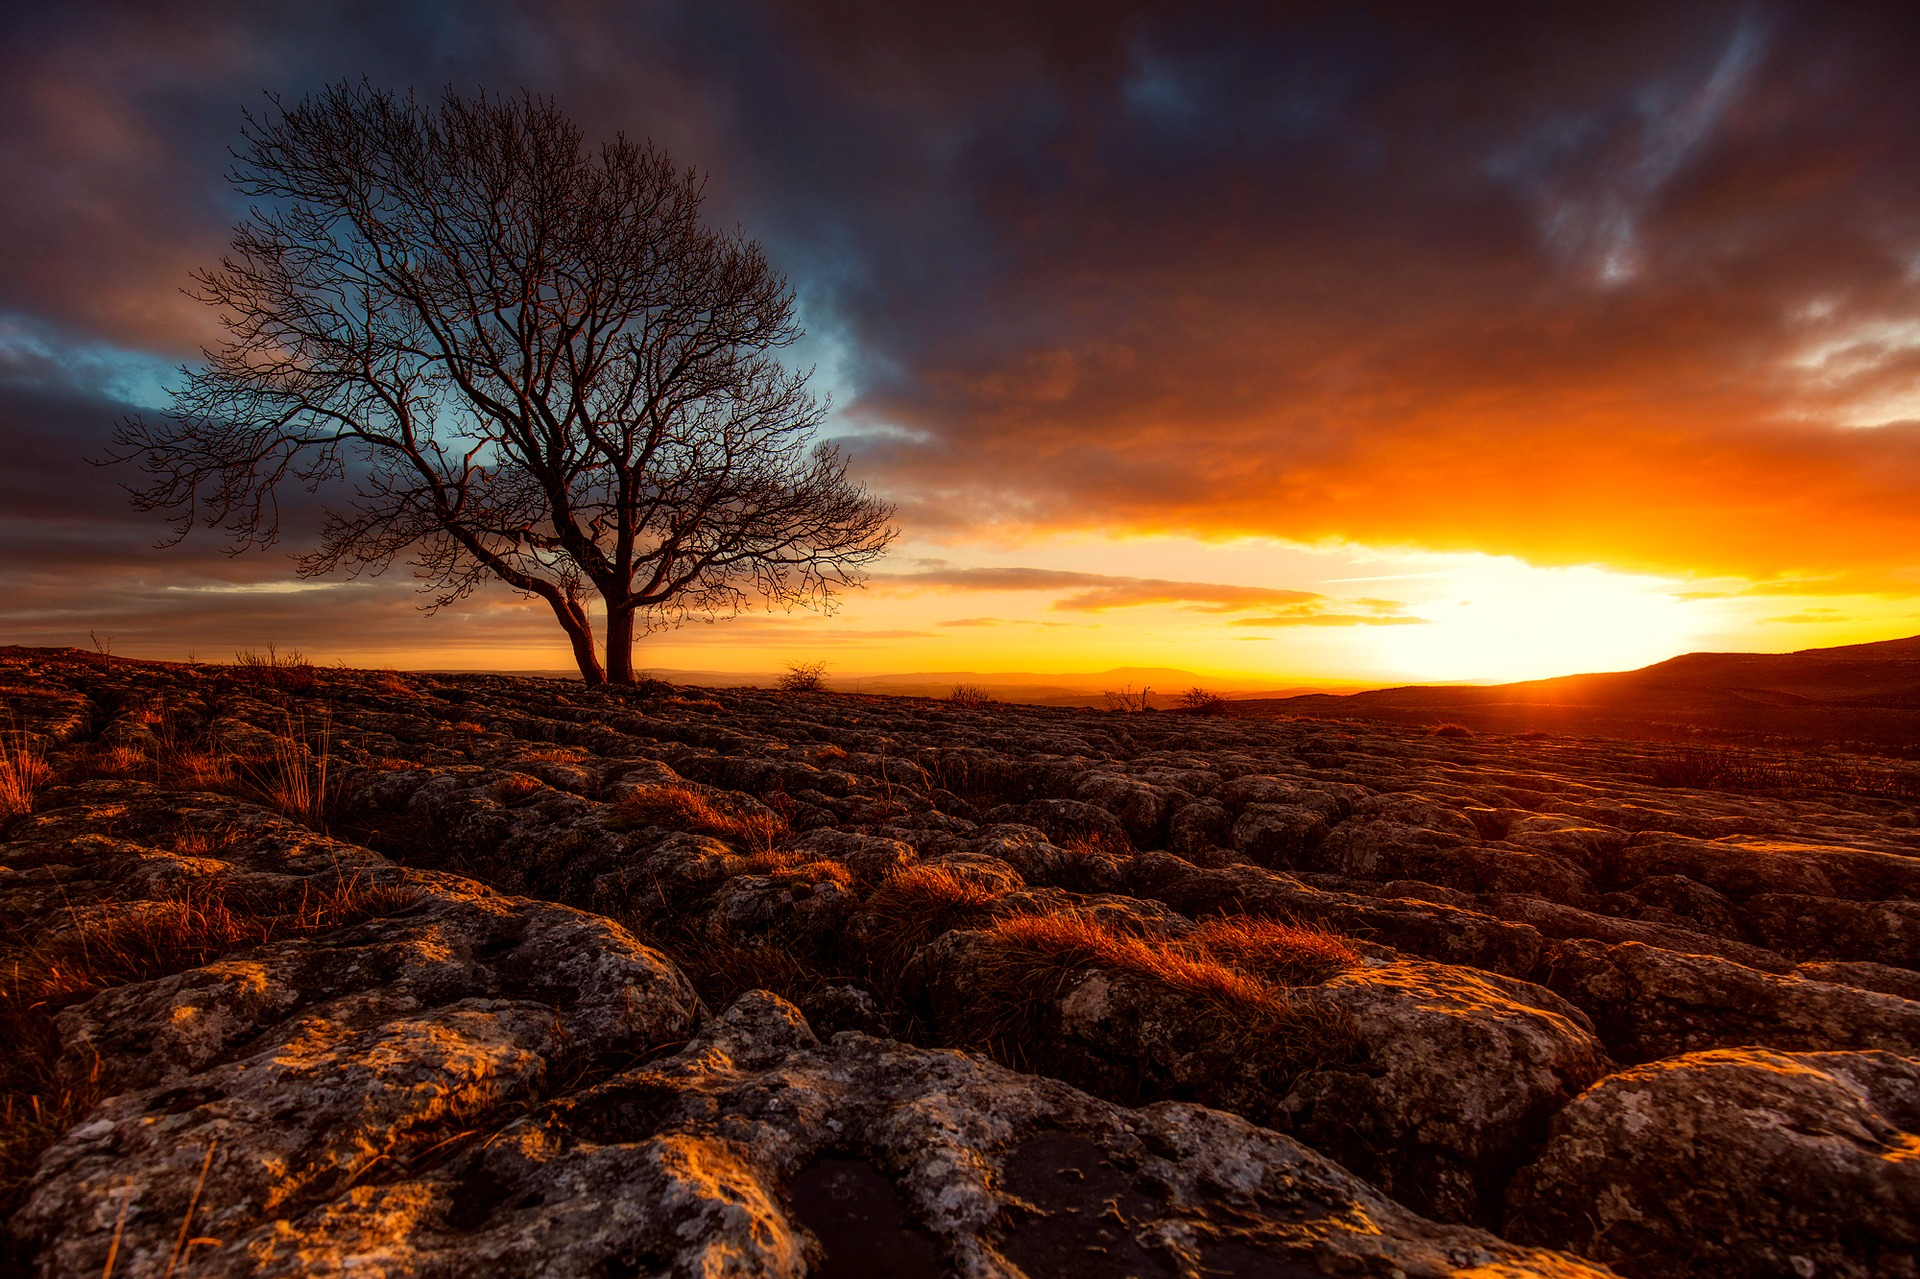 Sunset, Yorkshire, England